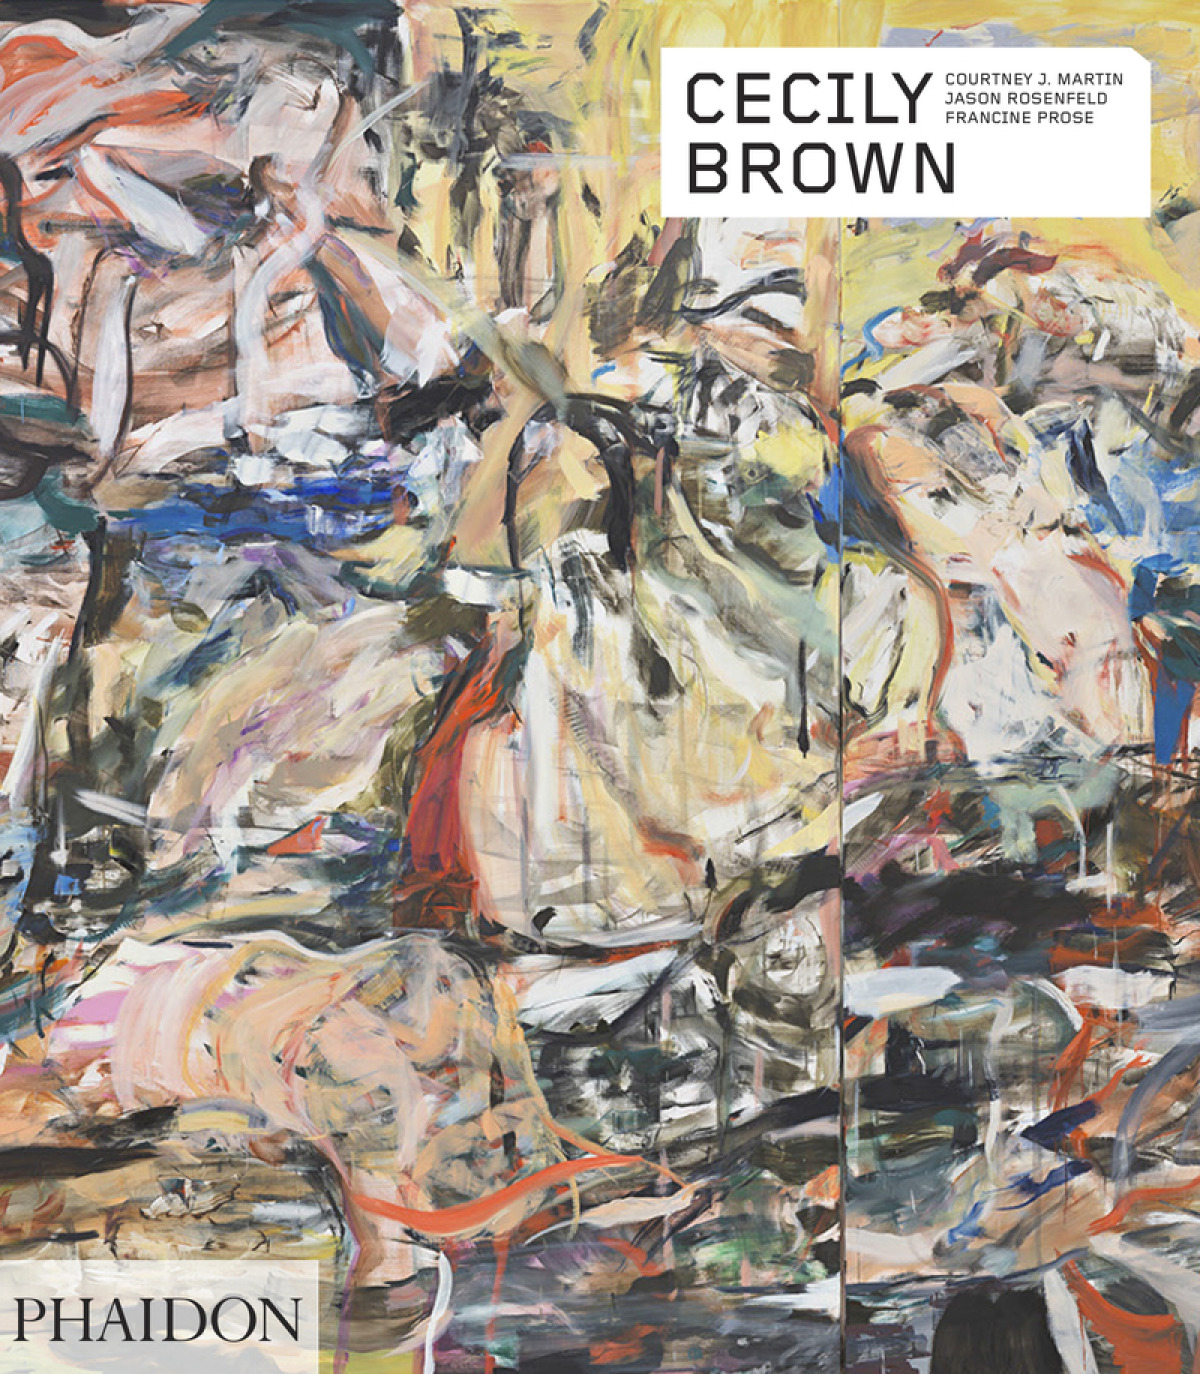 CECILY BROWN 9781838661045